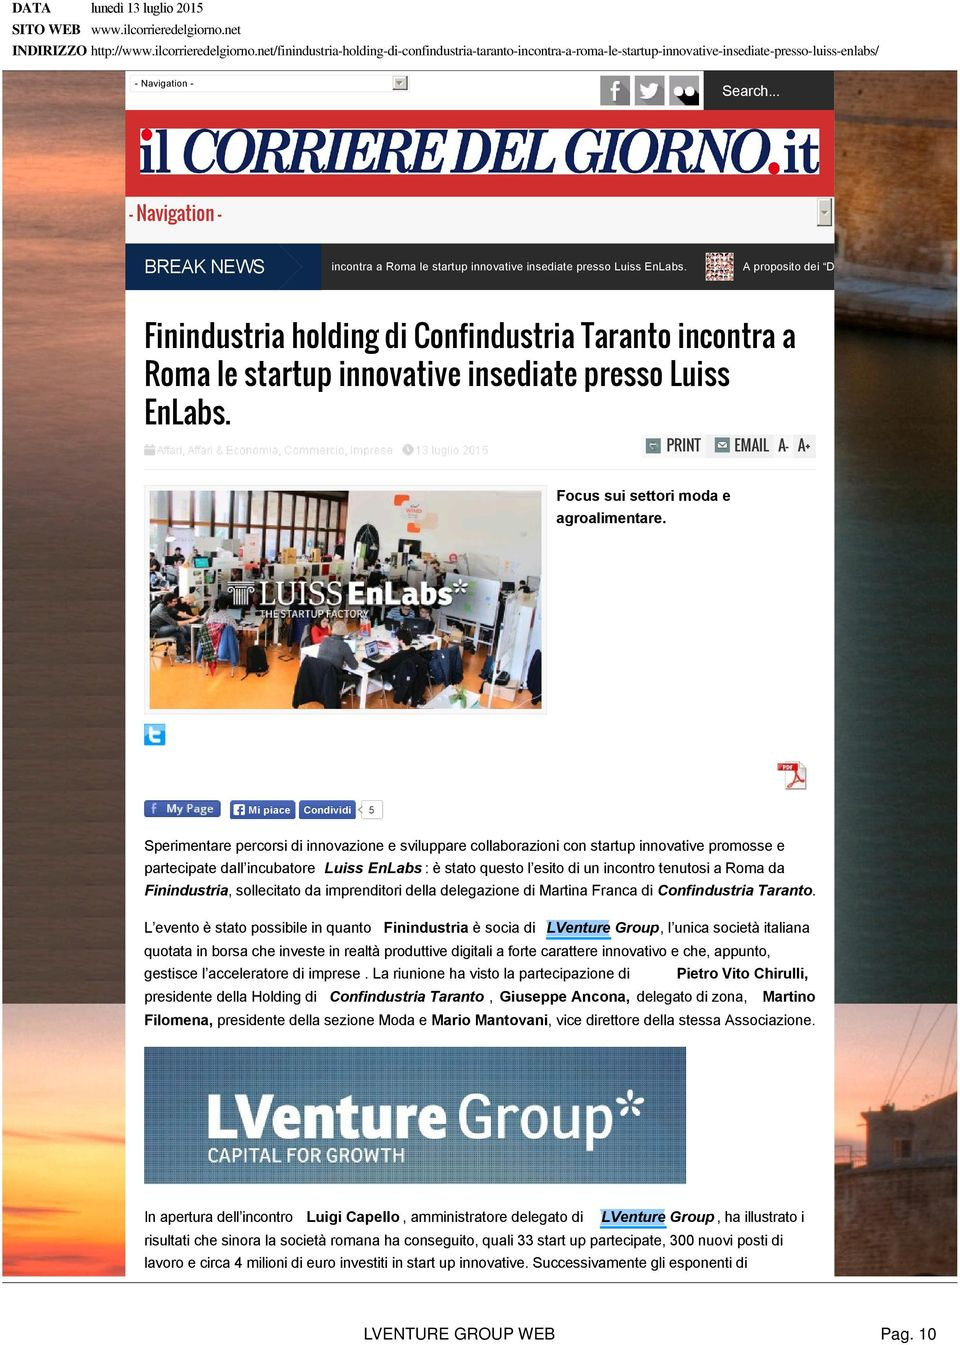 .. - Navigation - Finindustria BREAK holding di NEWS Confindustria Tar incontra a Roma le startup innovative insediate presso Luiss EnLabs.